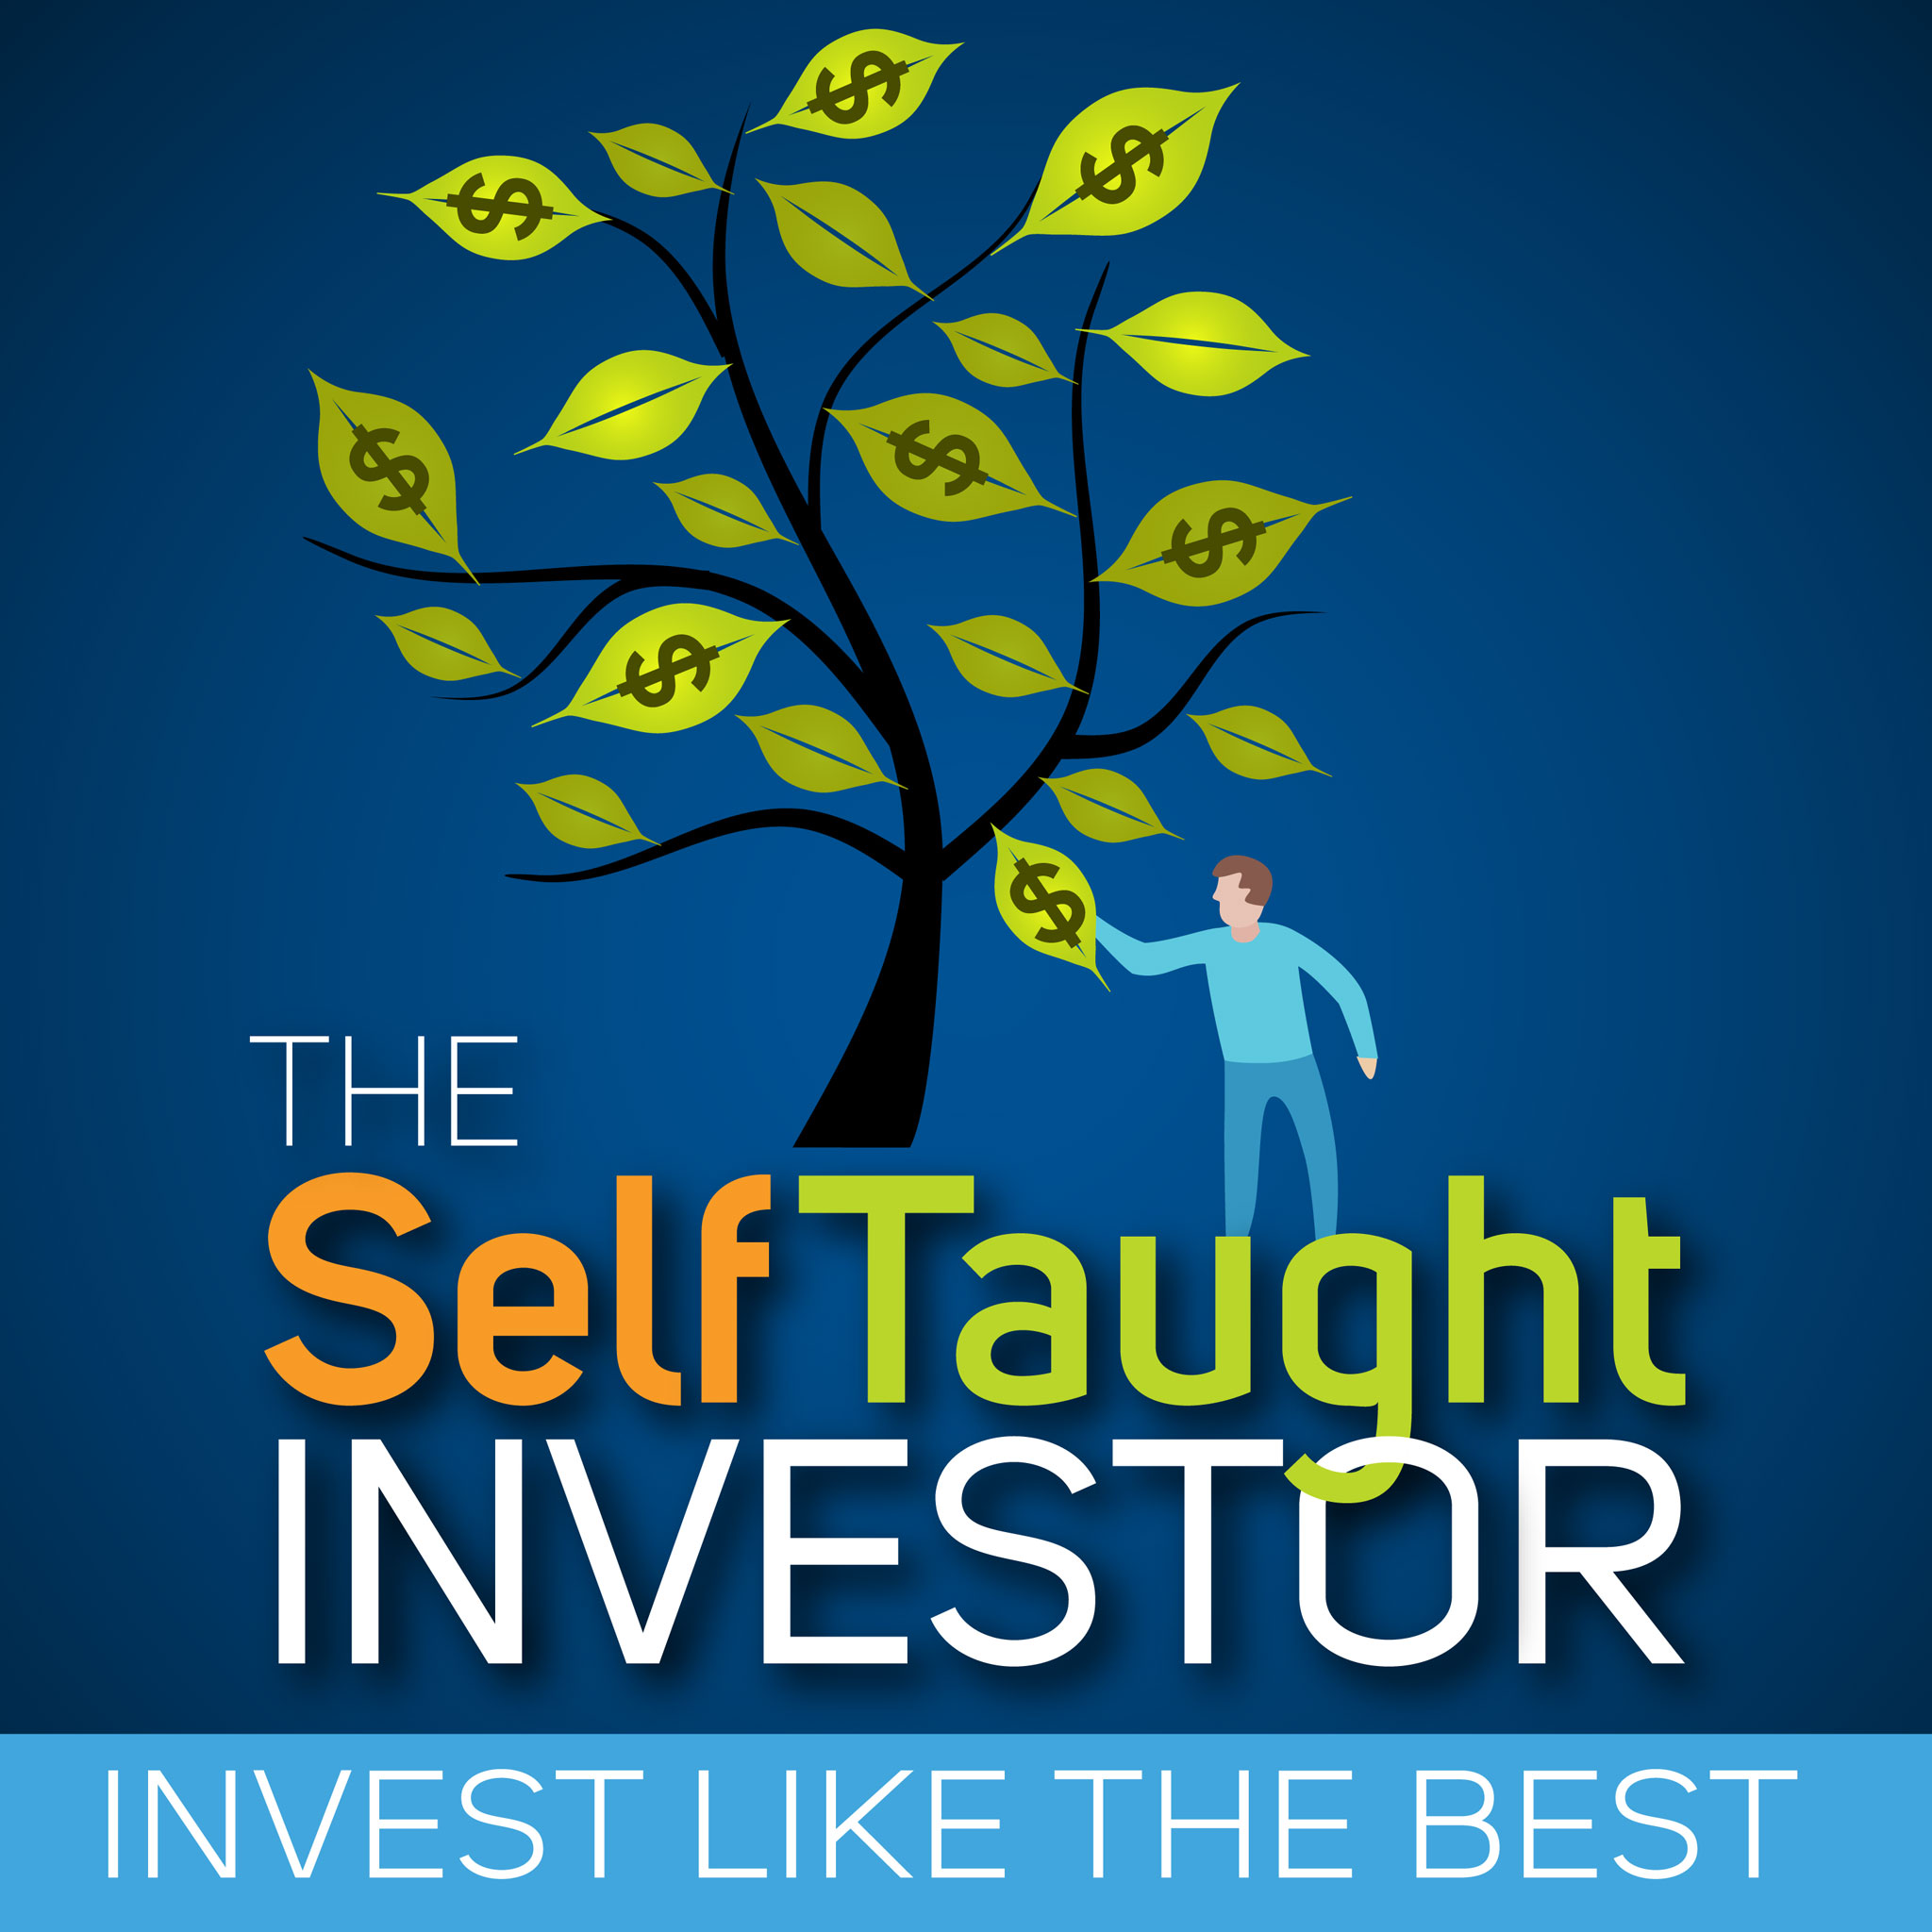 The Self Taught Investor